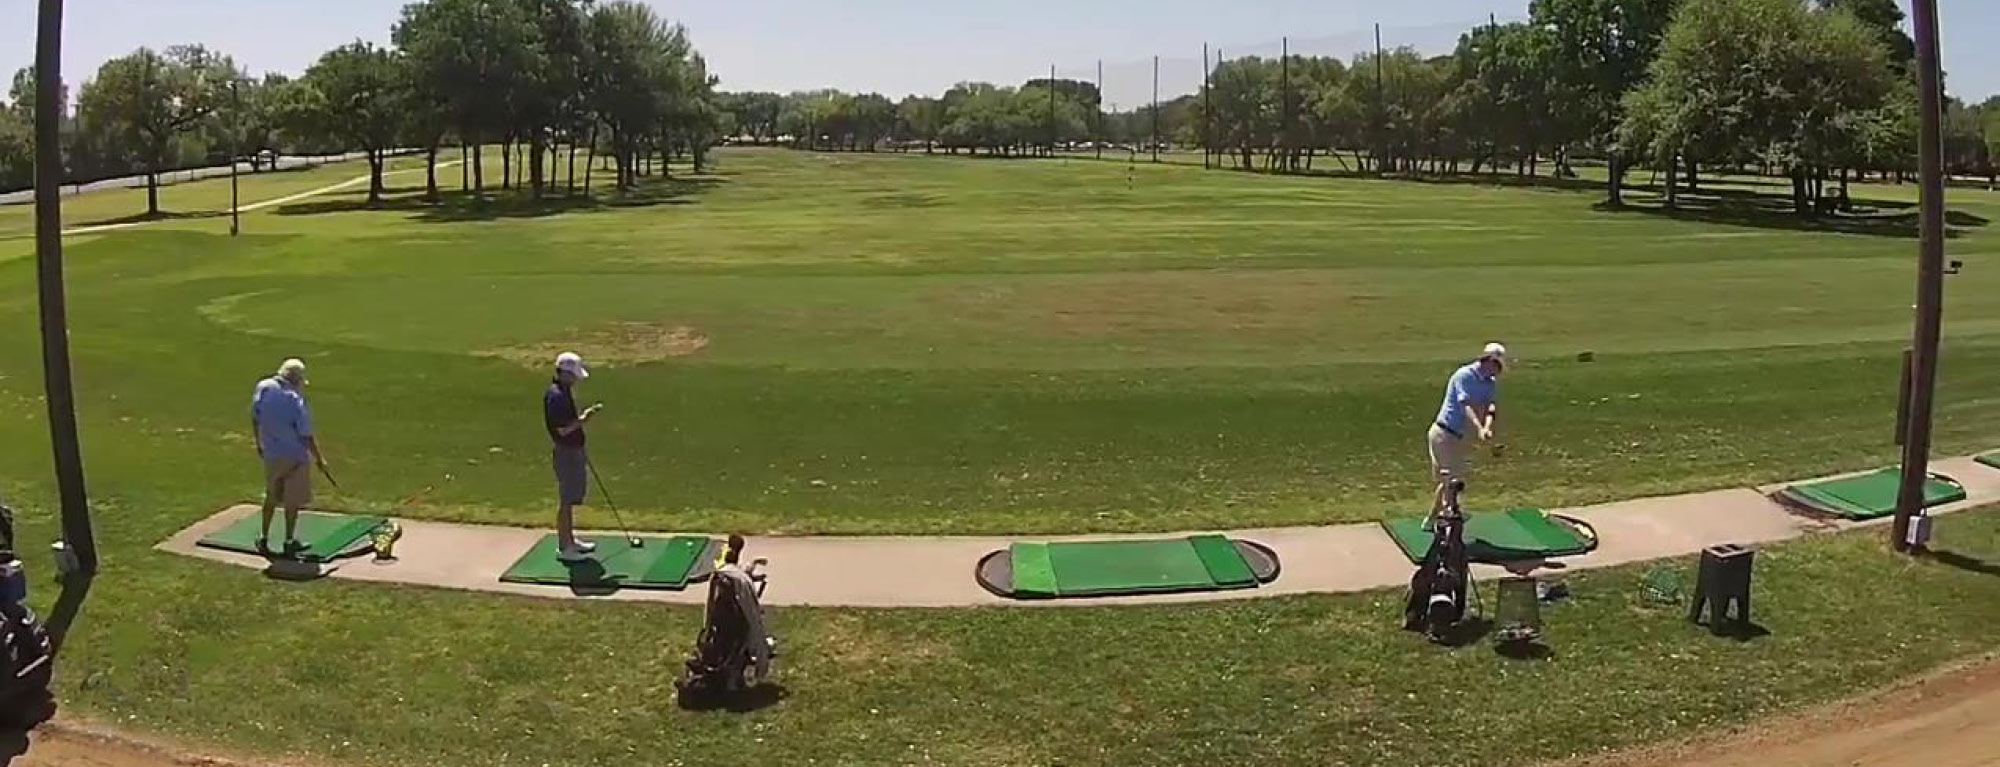 The official website of balcones country club driving range